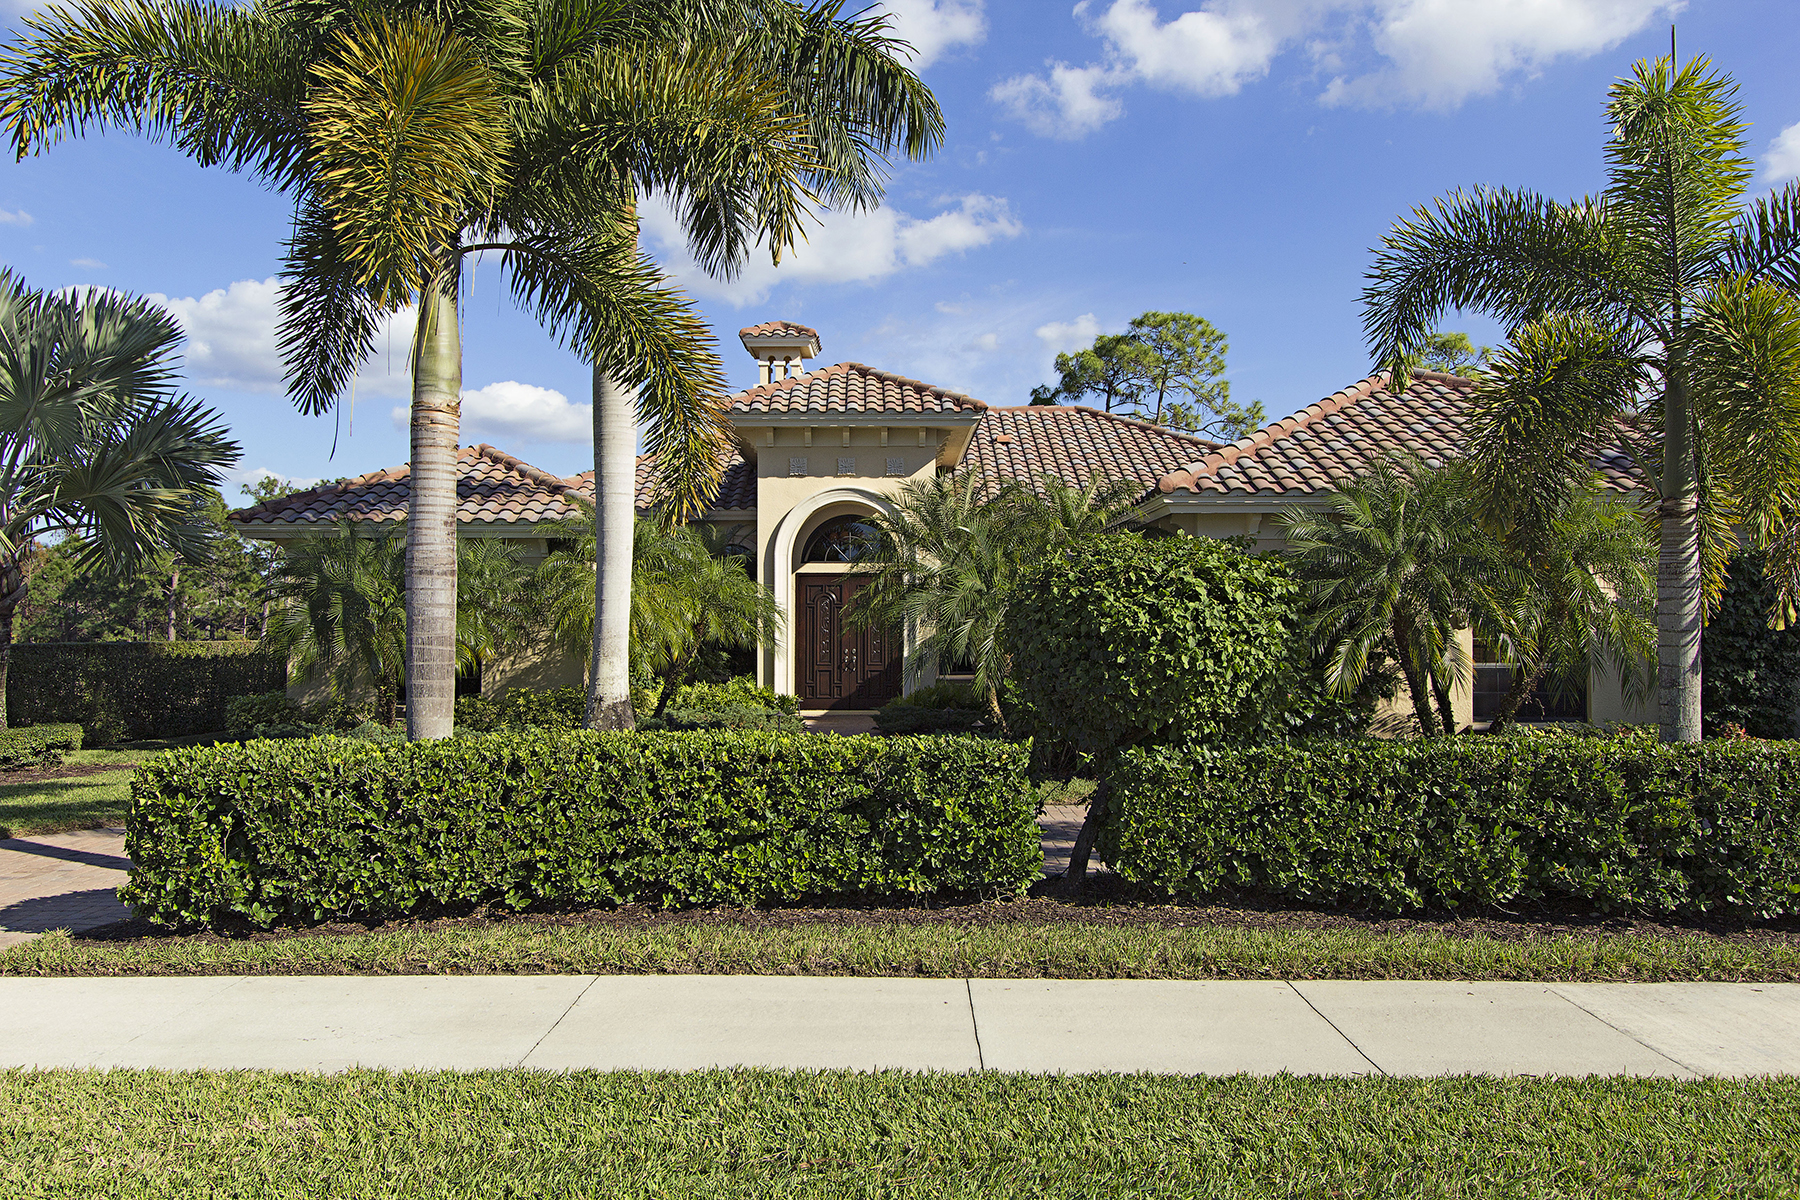 Single Family Home for Sale at OLDE CYPRESS - WILD ORCHID AT WOODSEDGE 2818 Wild Orchid Ct Naples, Florida, 34119 United States